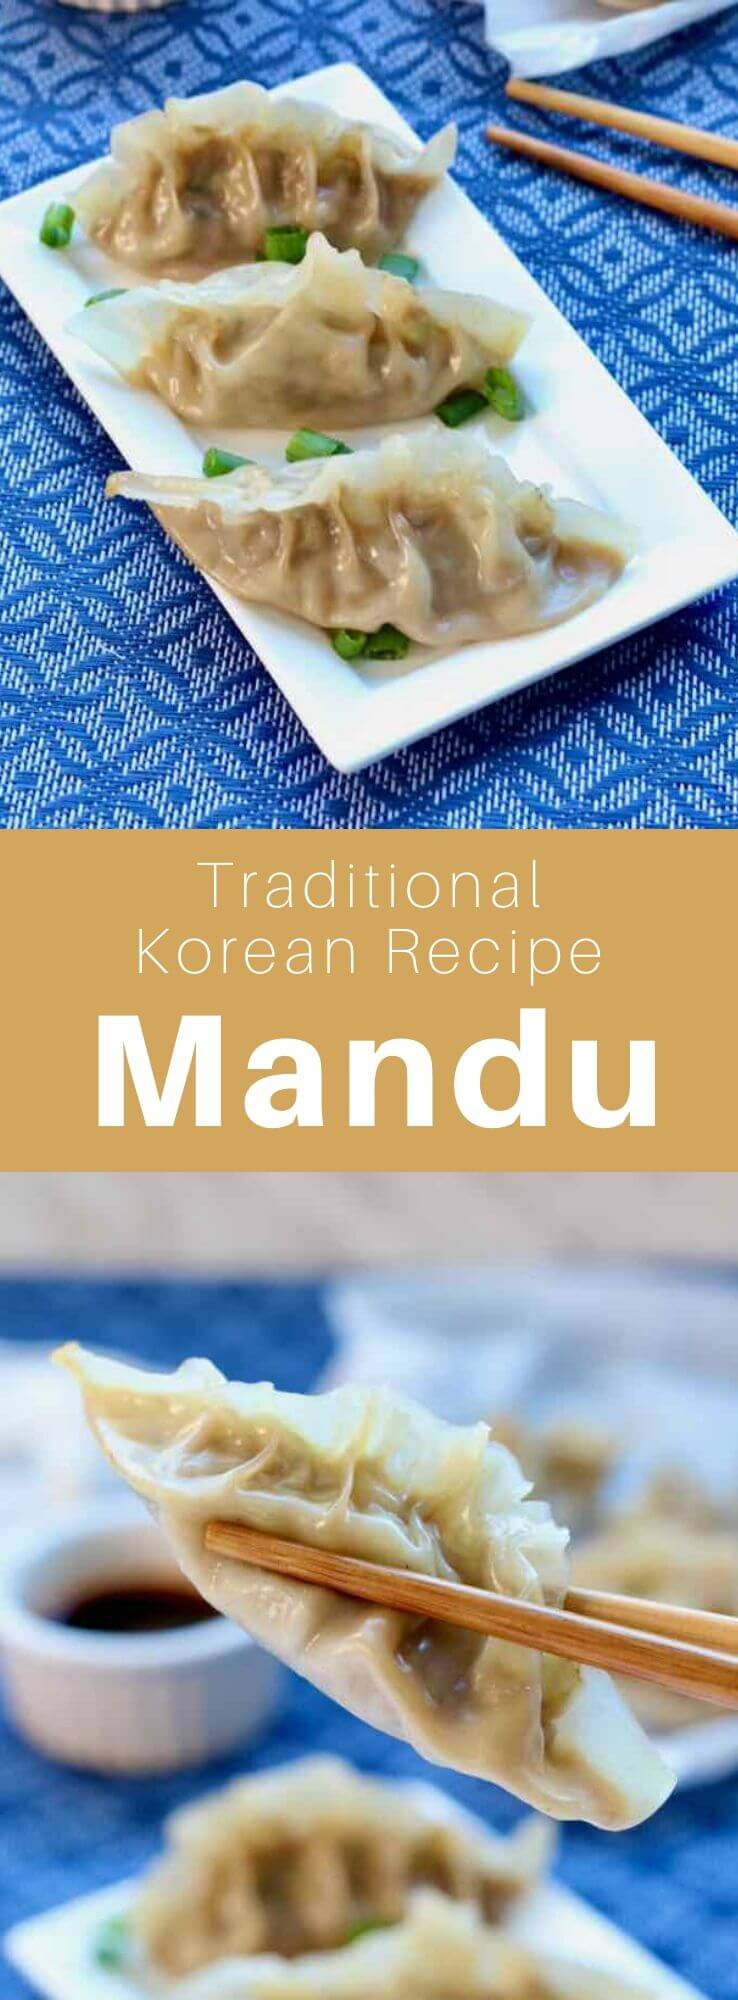 Mandu (만두) are dumplings from Korea that can be boiled, steamed, deep-fried or pan-fried. They are a variant of Chinese jiaozi. #KoreanFood #KoreanRecipe #KoreanCuisine #WorldCuisine #196flavors